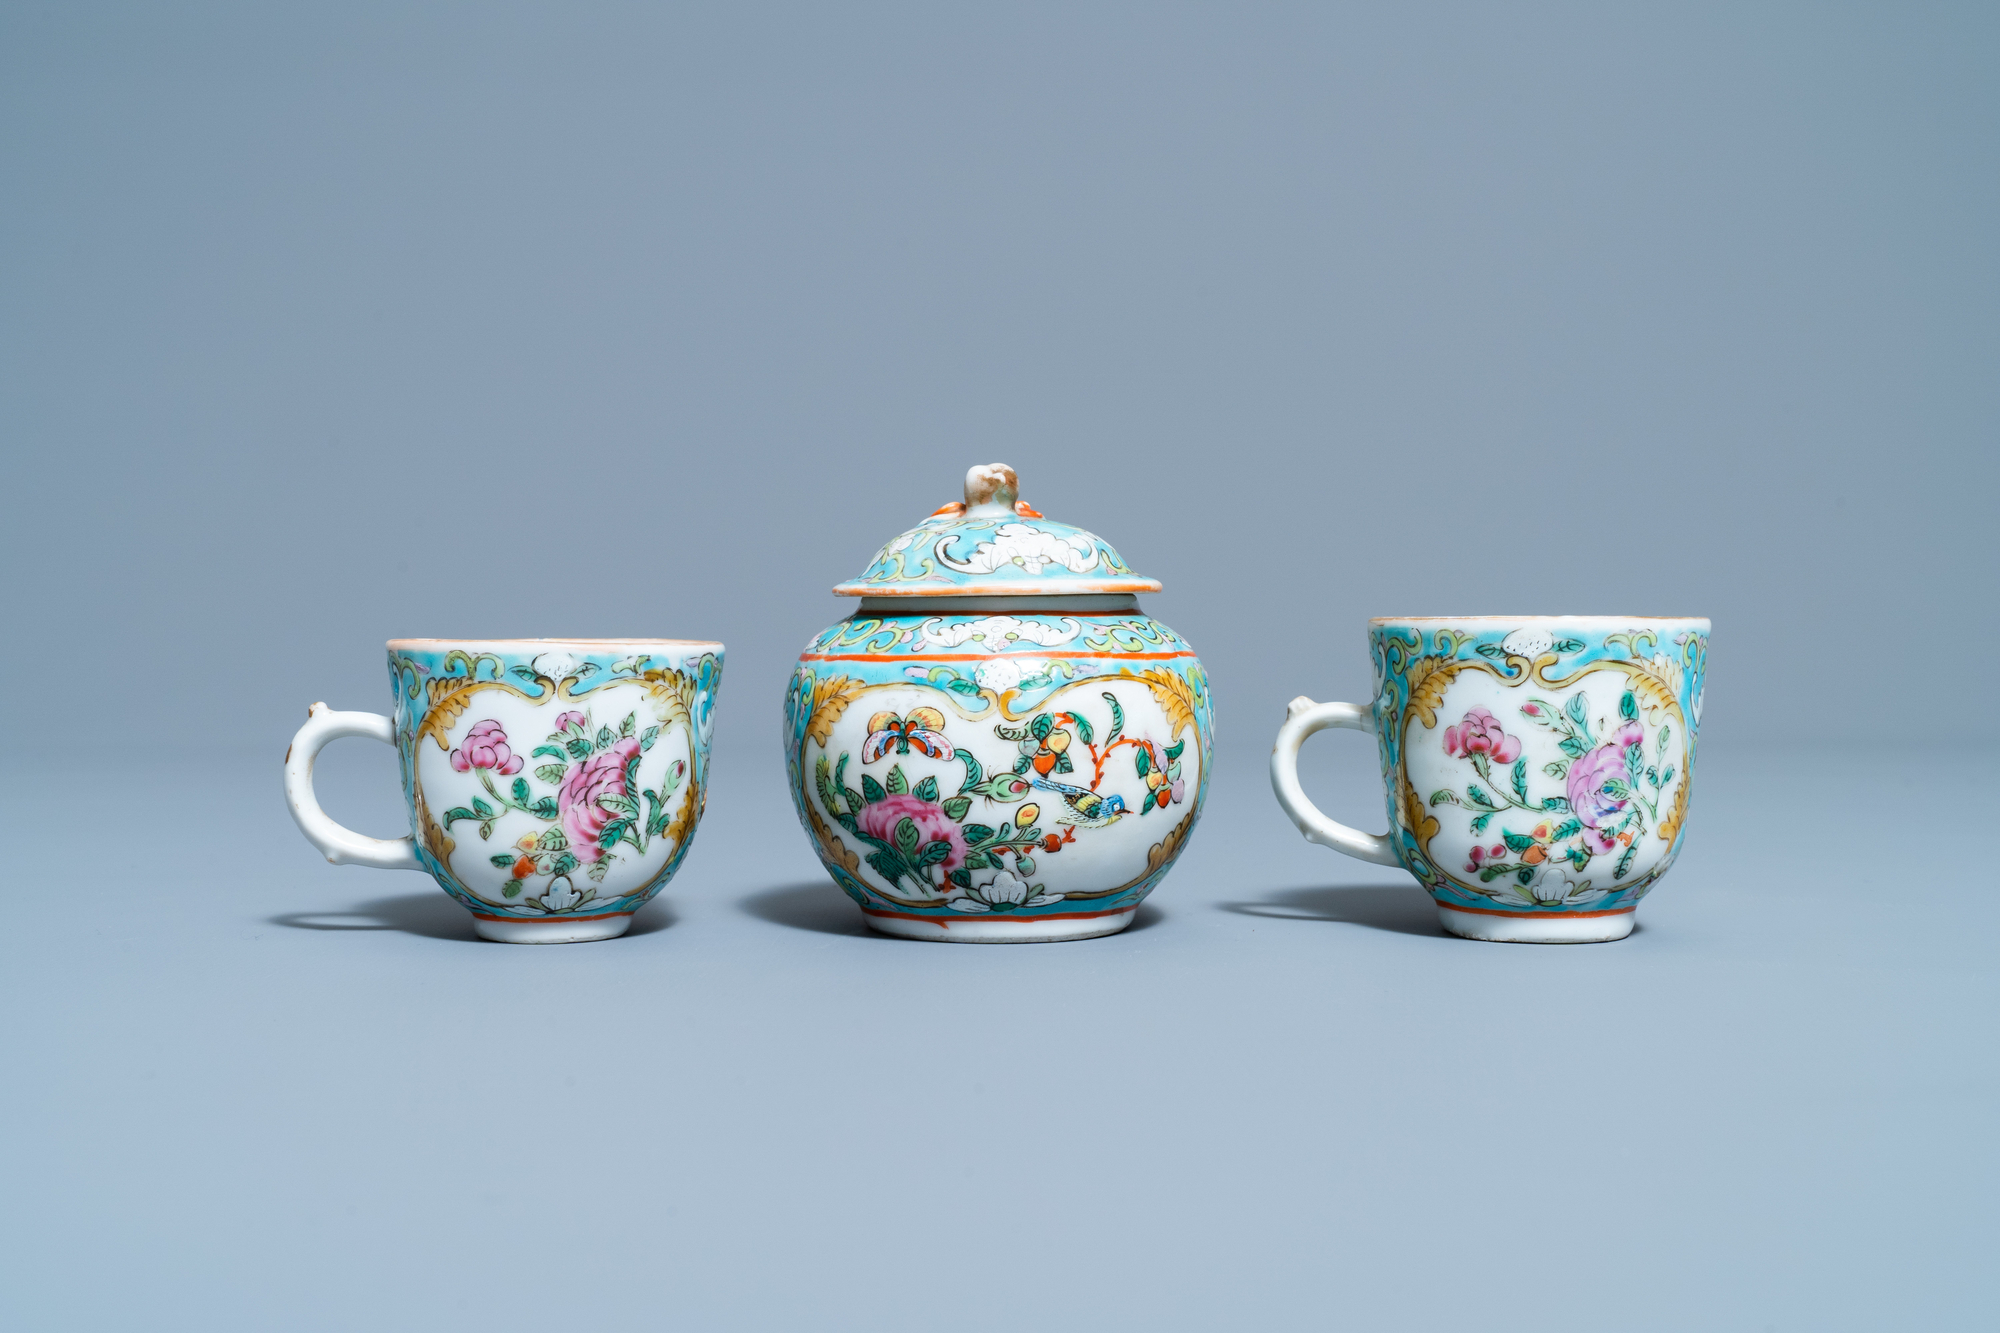 A Chinese famille rose 'tete-a-tete' tea service on tray, 19th C. - Image 7 of 10